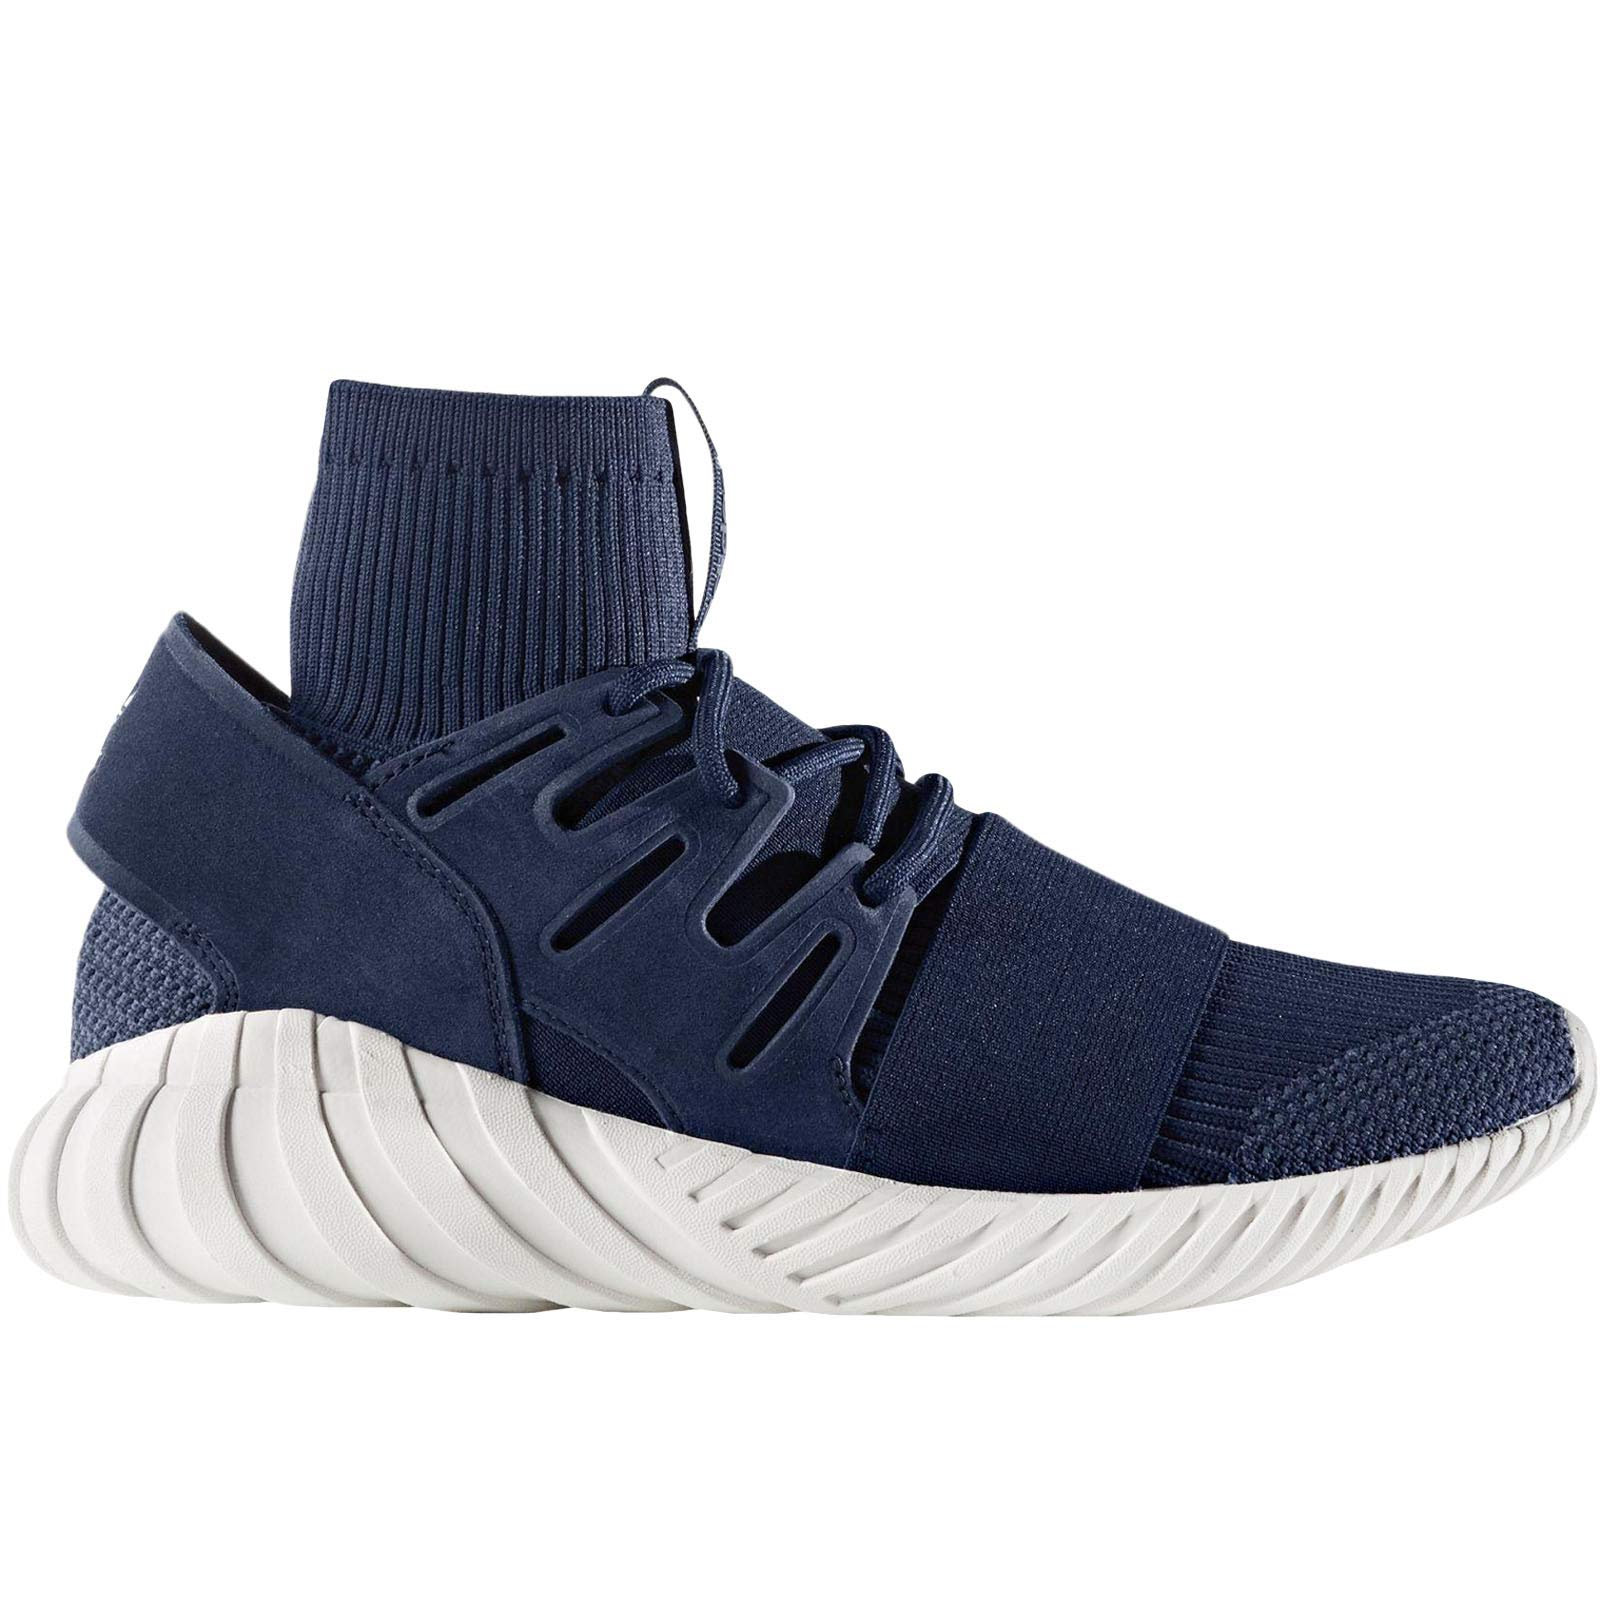 50446e7fbe7 Galleon - Adidas Originals Tubular Doom Pk Mens Hi Top Trainers Sneakers  Shoes (UK 7.5 US 8 EU 41 1 3